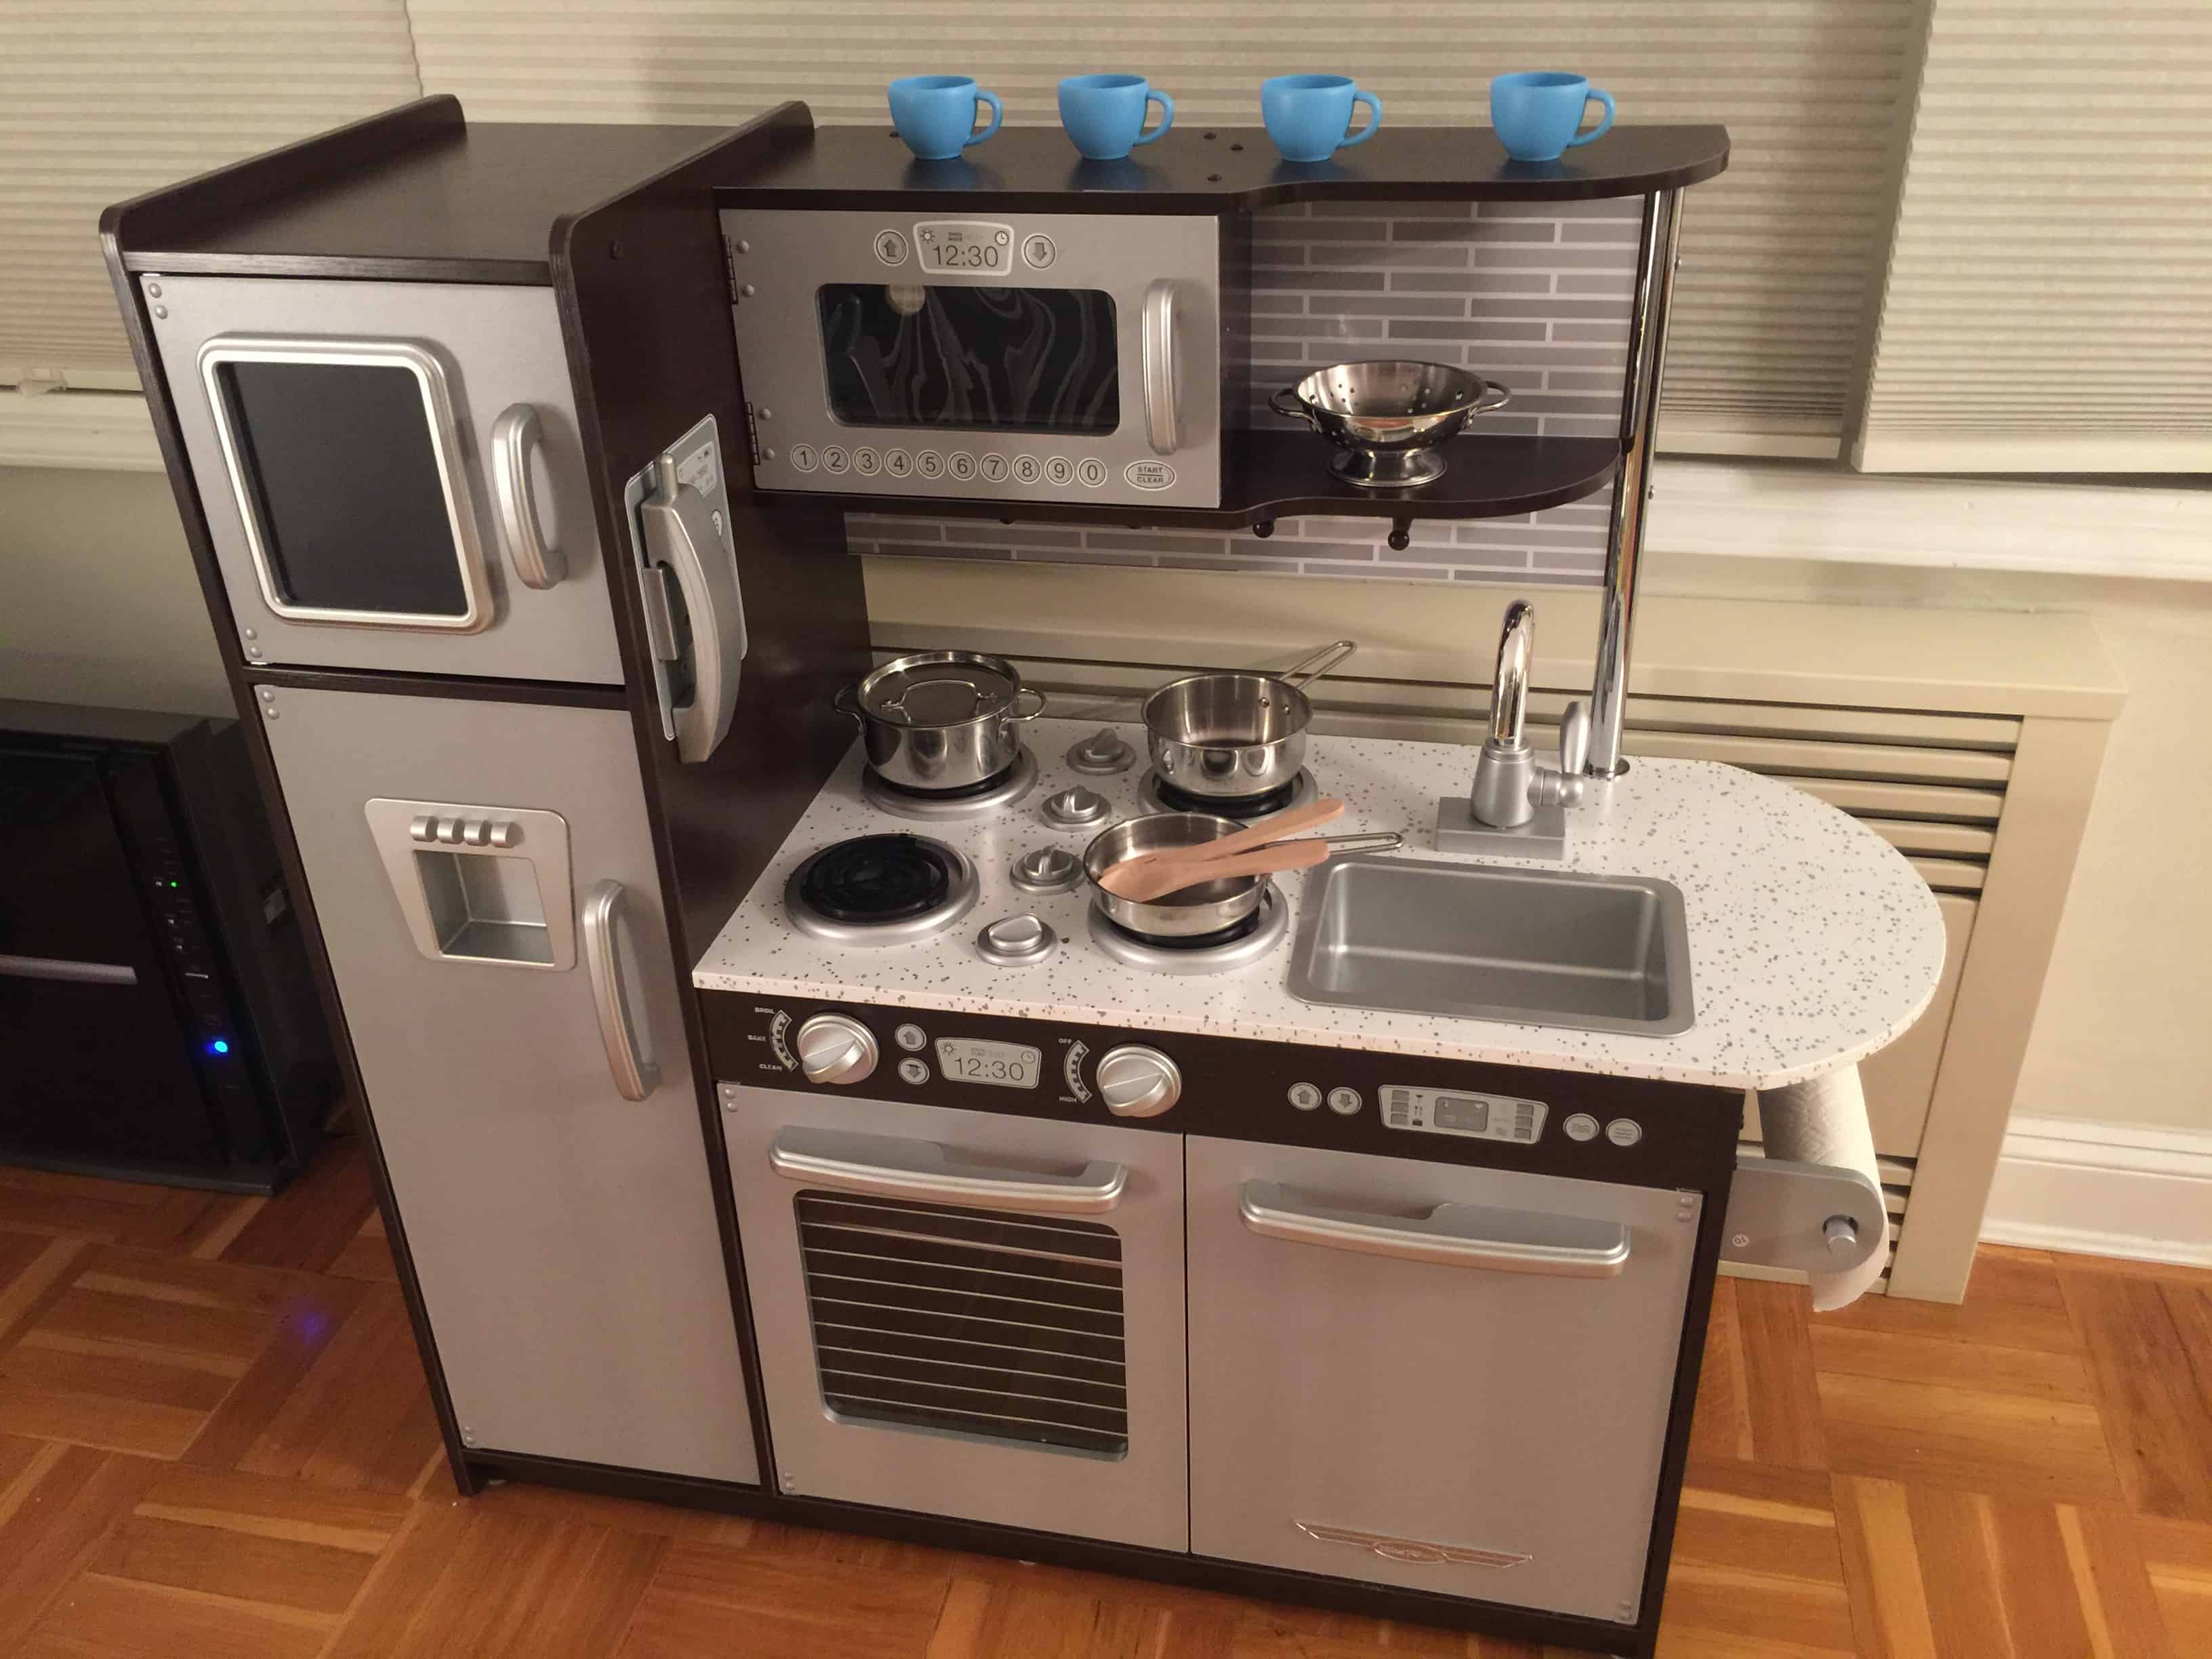 KidKraft Uptown Espresso Kitchen Review: First Impressions | Mommy To Max